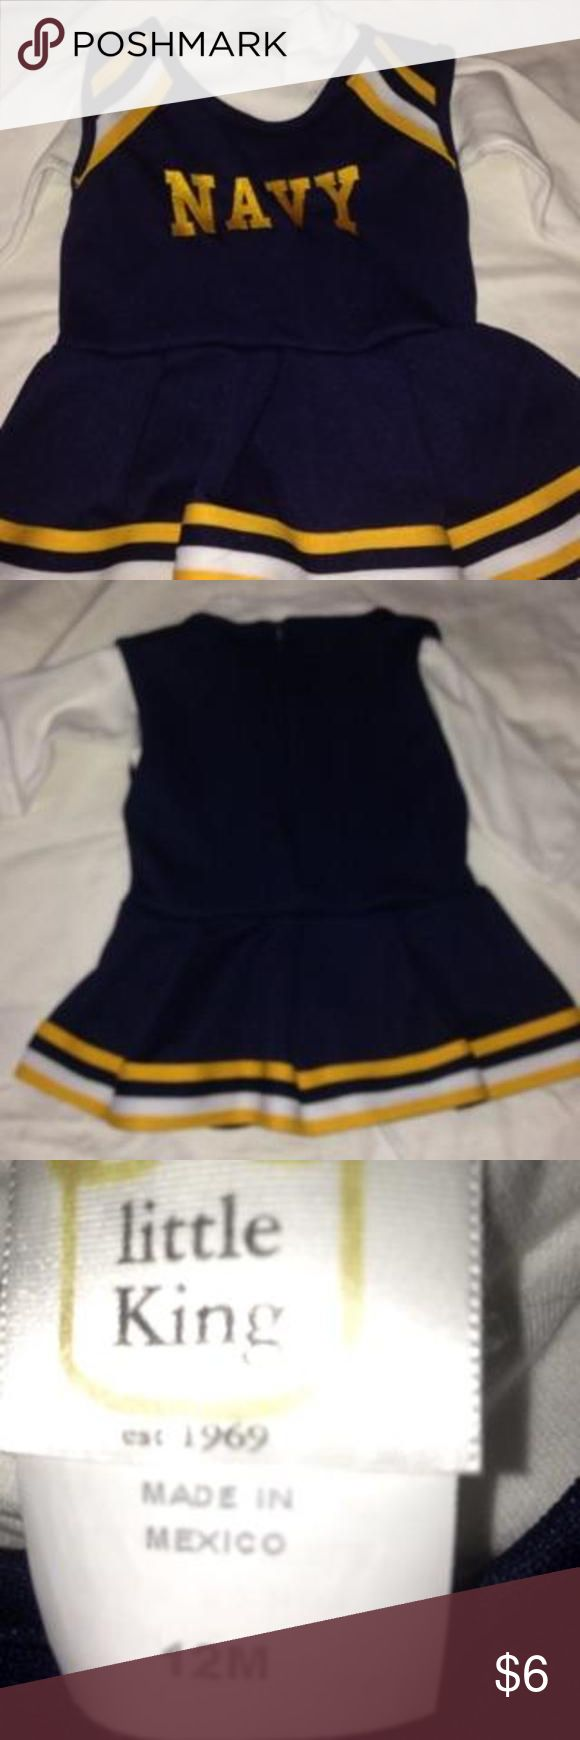 🏈Get Ready For Navy Football! Two-piece Navy cheerleader outfit size 12 months. Lightly used. White shirt is a long-sleeve mock turtleneck but is easily substituted by any white shirt. Official Navy gear. Dresses